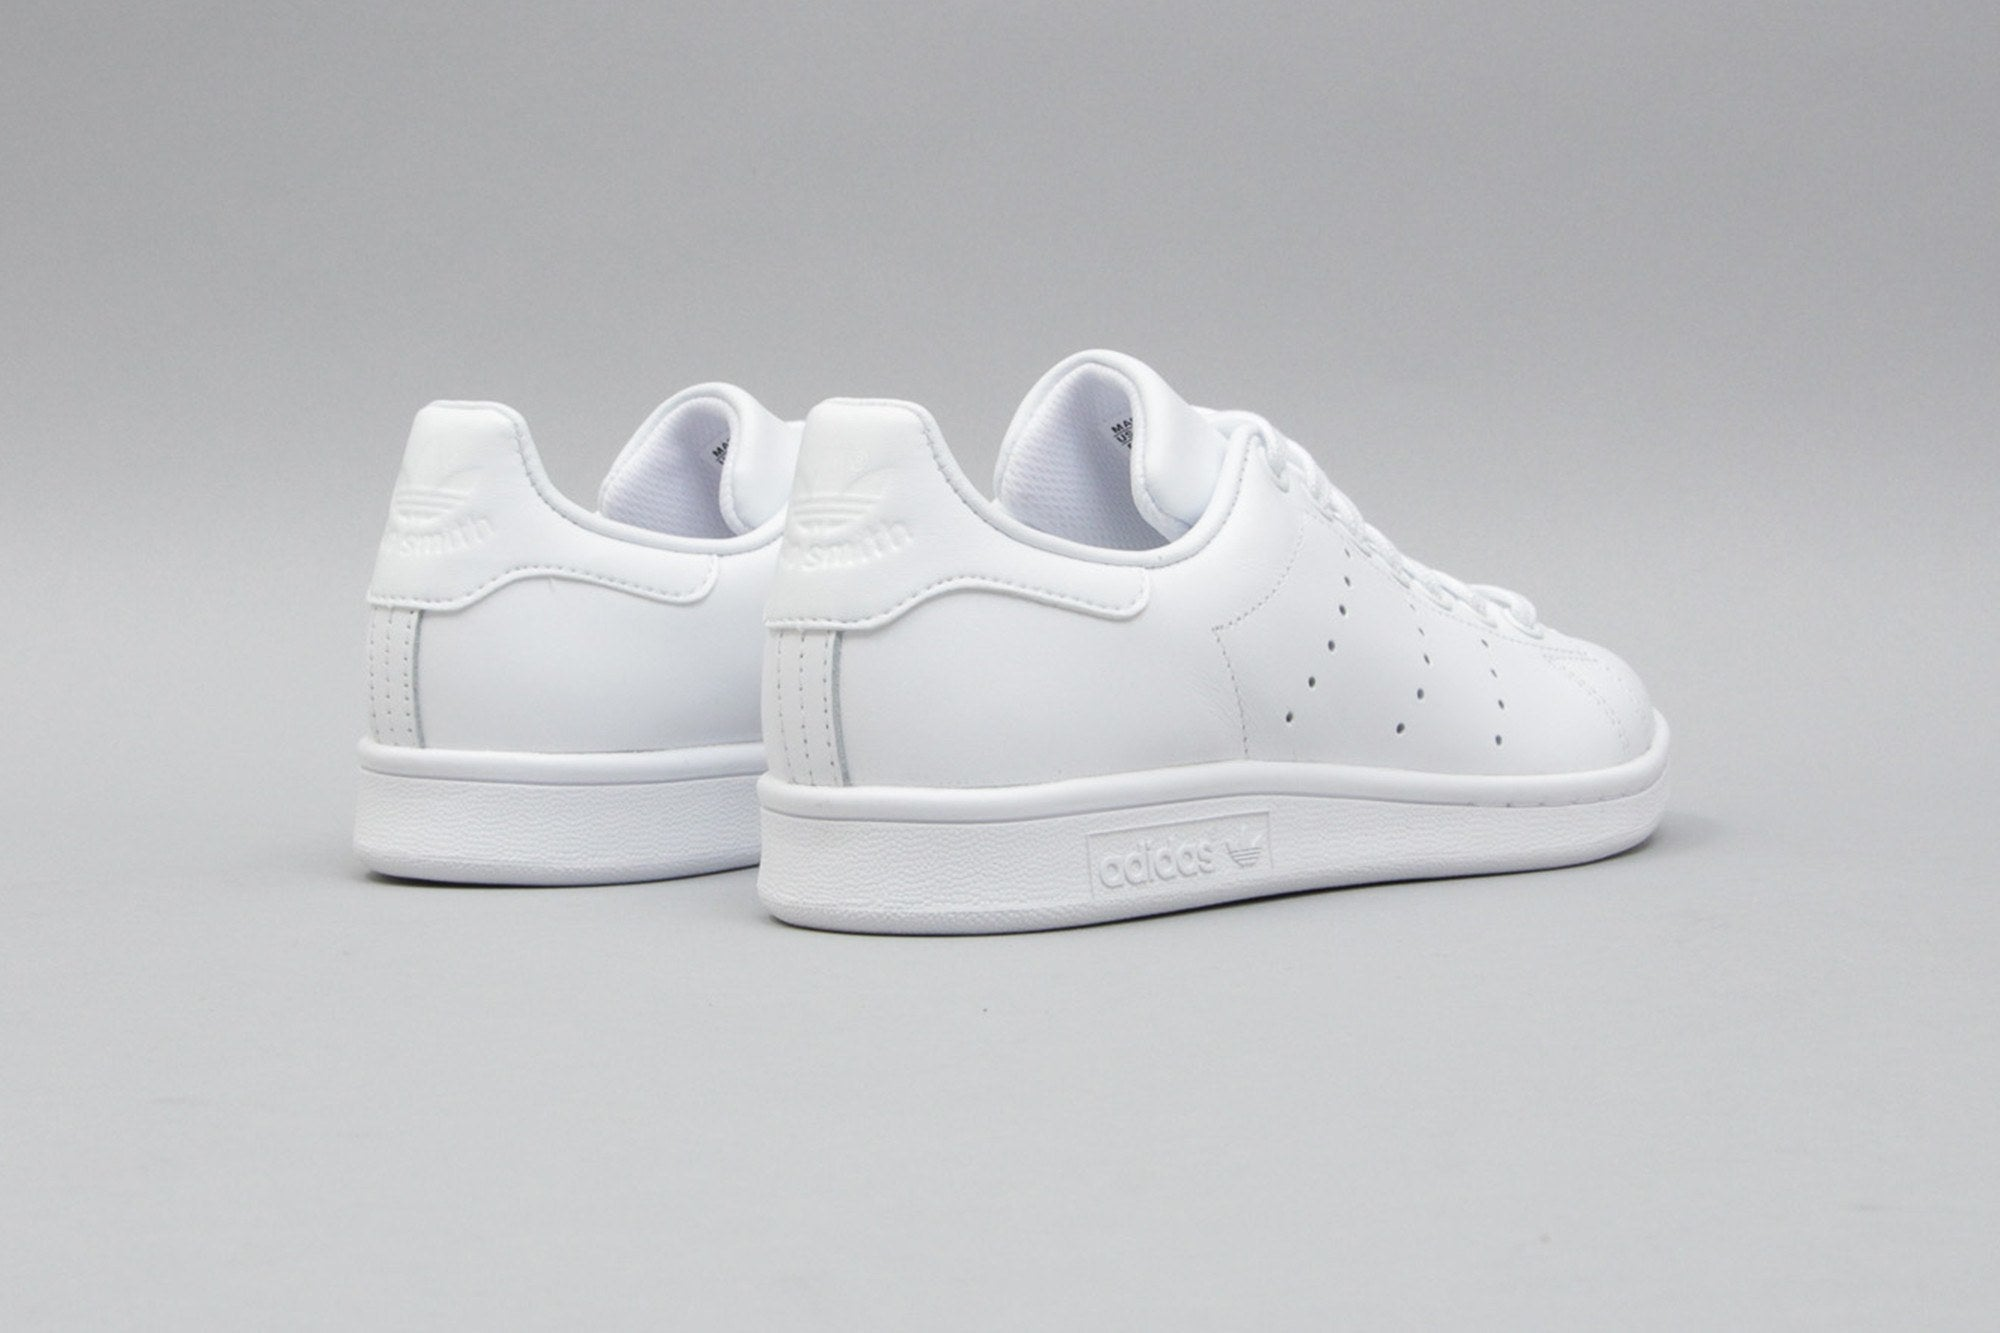 adidas Stan Smith Men's Leather Walking Shoes